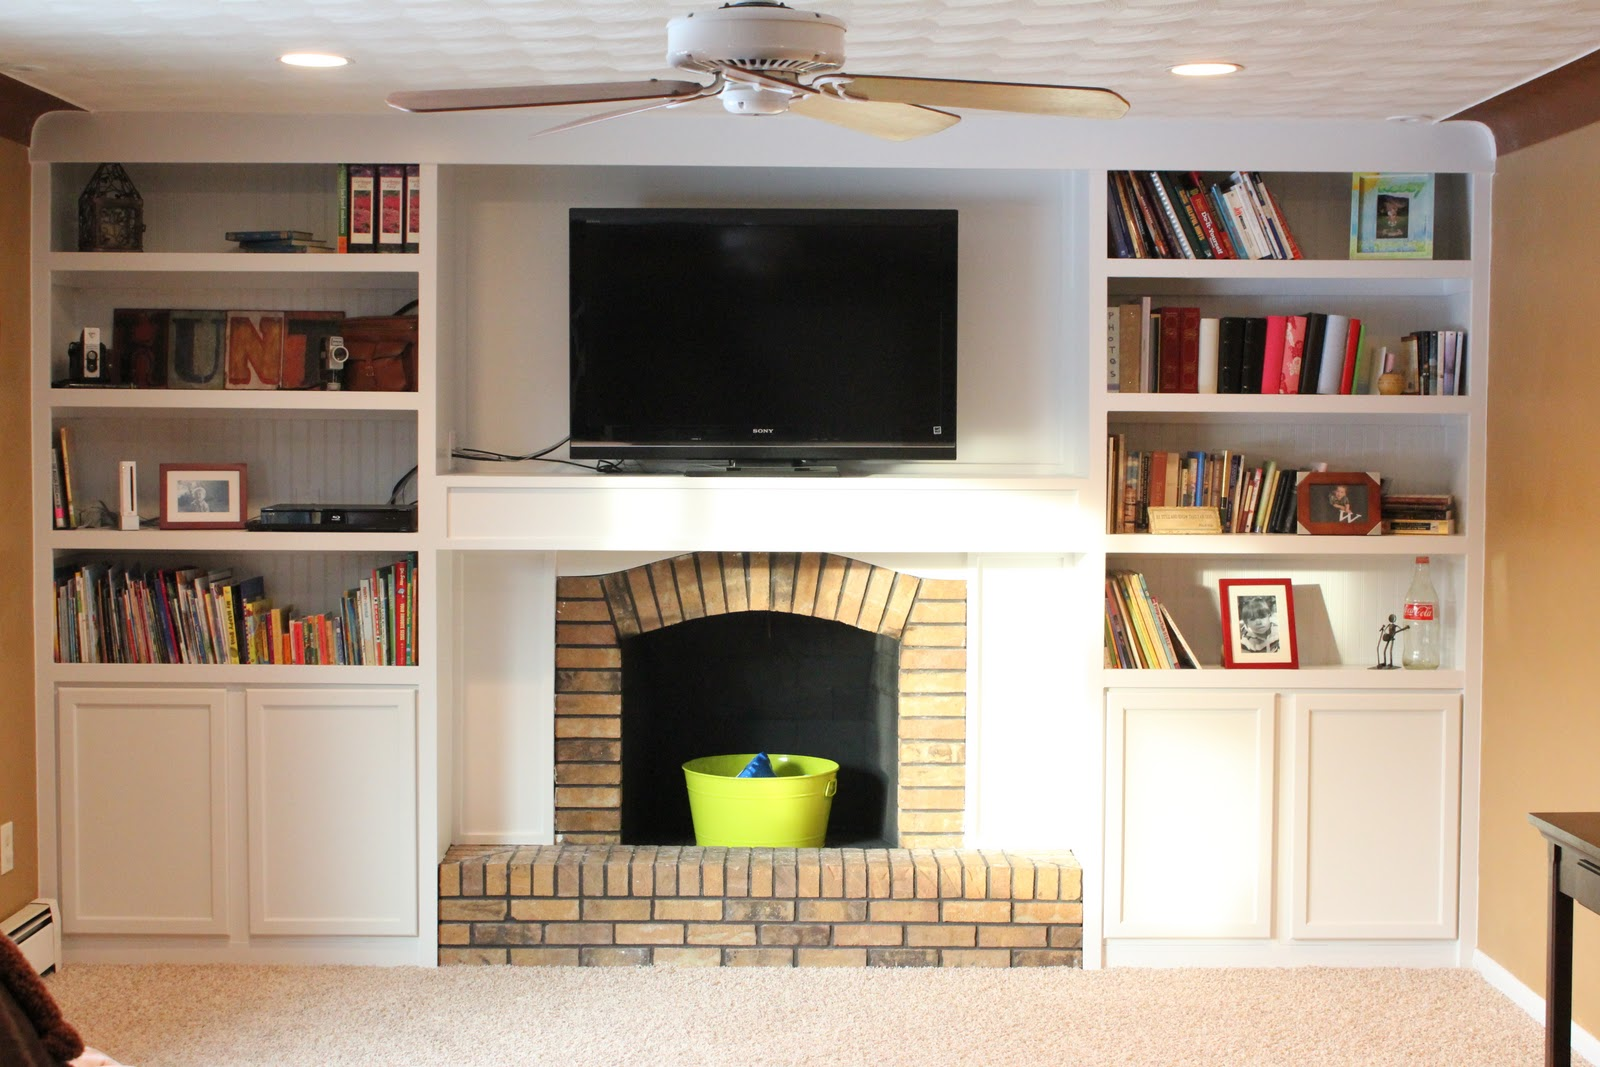 Incroyable Remodelaholic Built Ins Around Fireplace